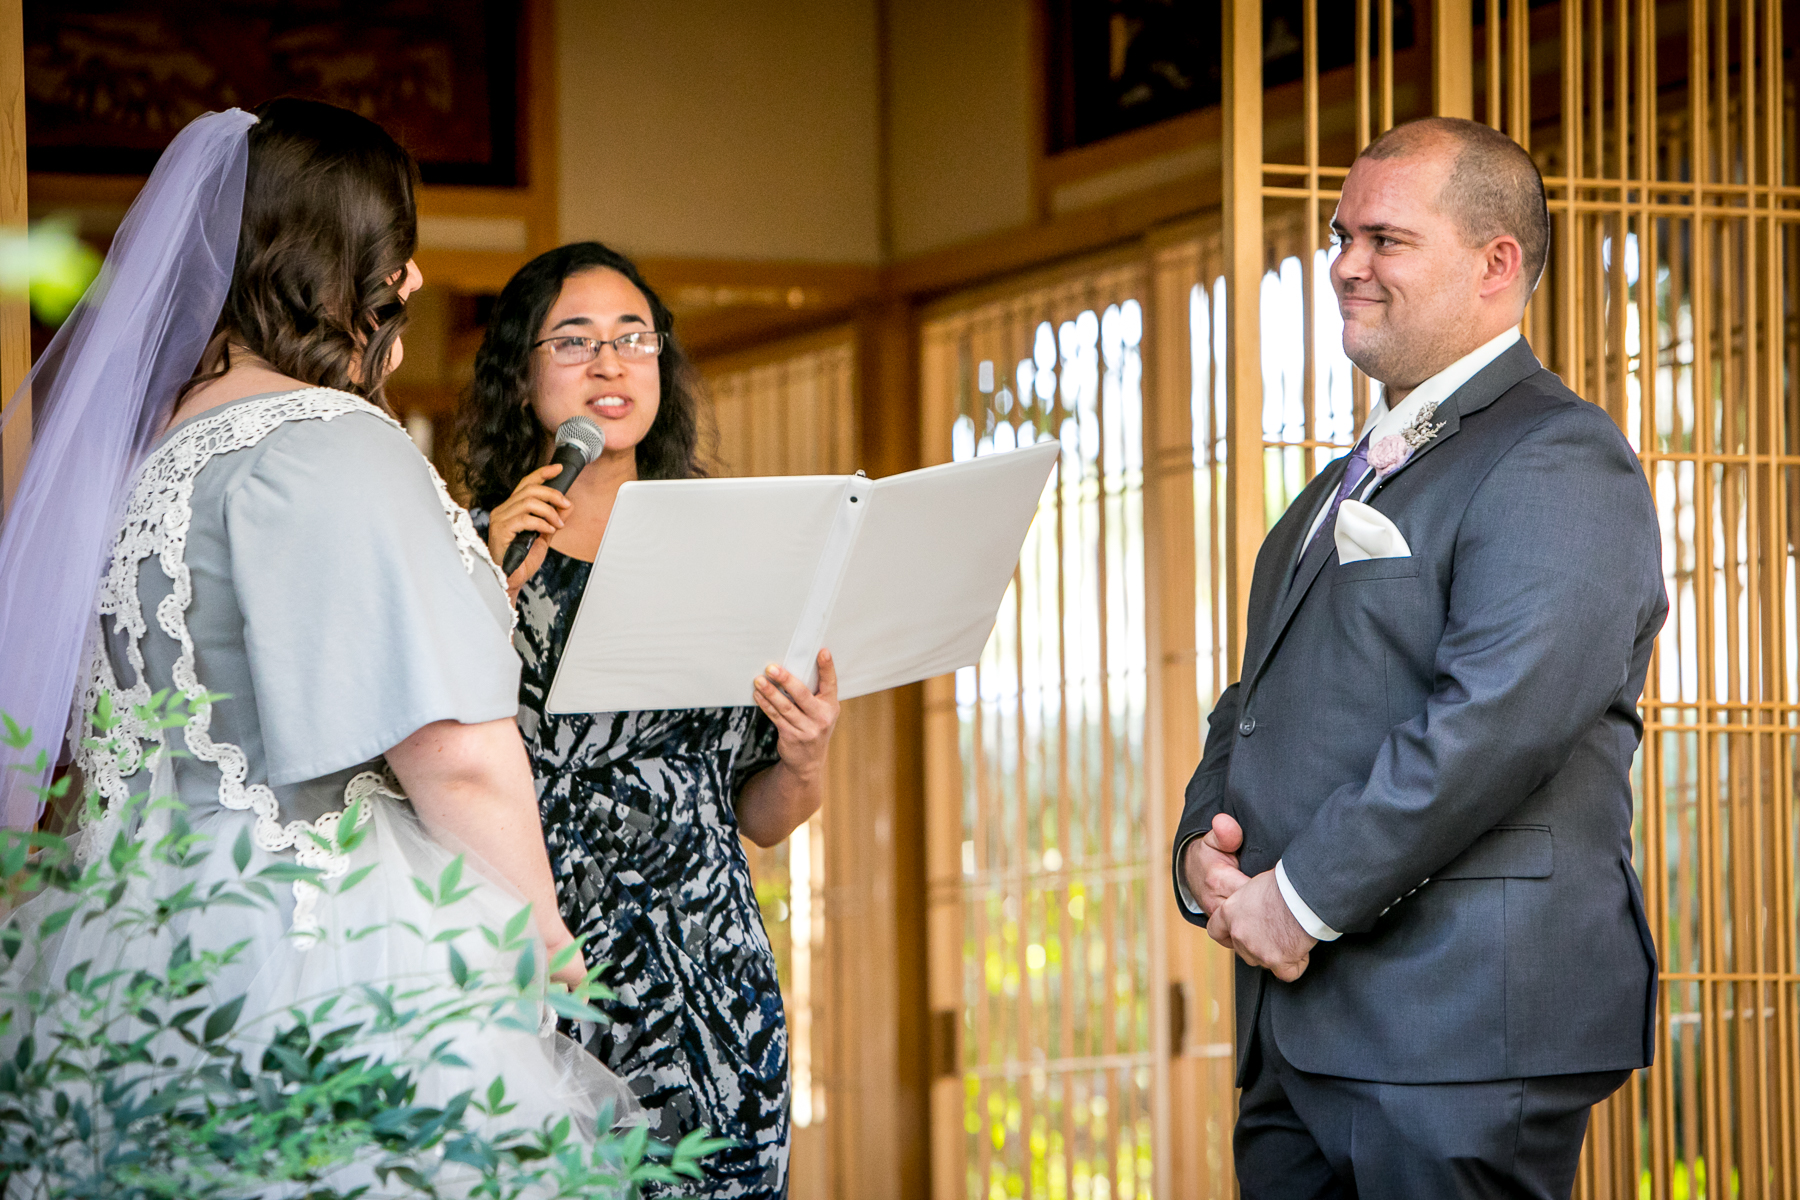 groom smiles during wedding ceremony at storrier stearns photographer